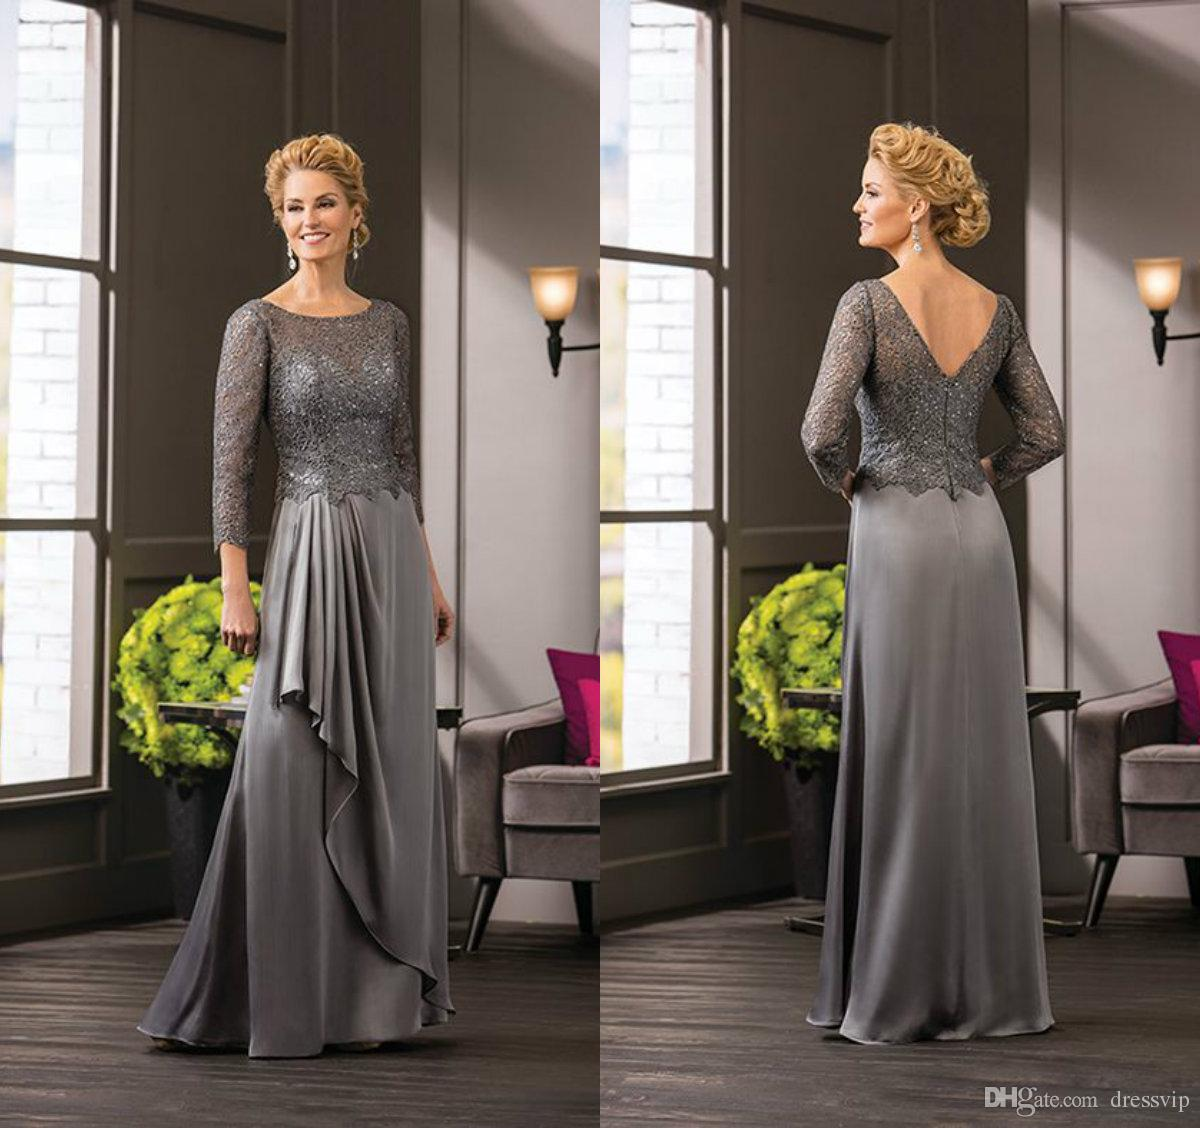 Grey Mother of The Bride Ruffle Lace Chiffon Jewel Neck Long Sleeve Elegant Mother of the Groom Dress Floor Length Wedding Guest Gowns